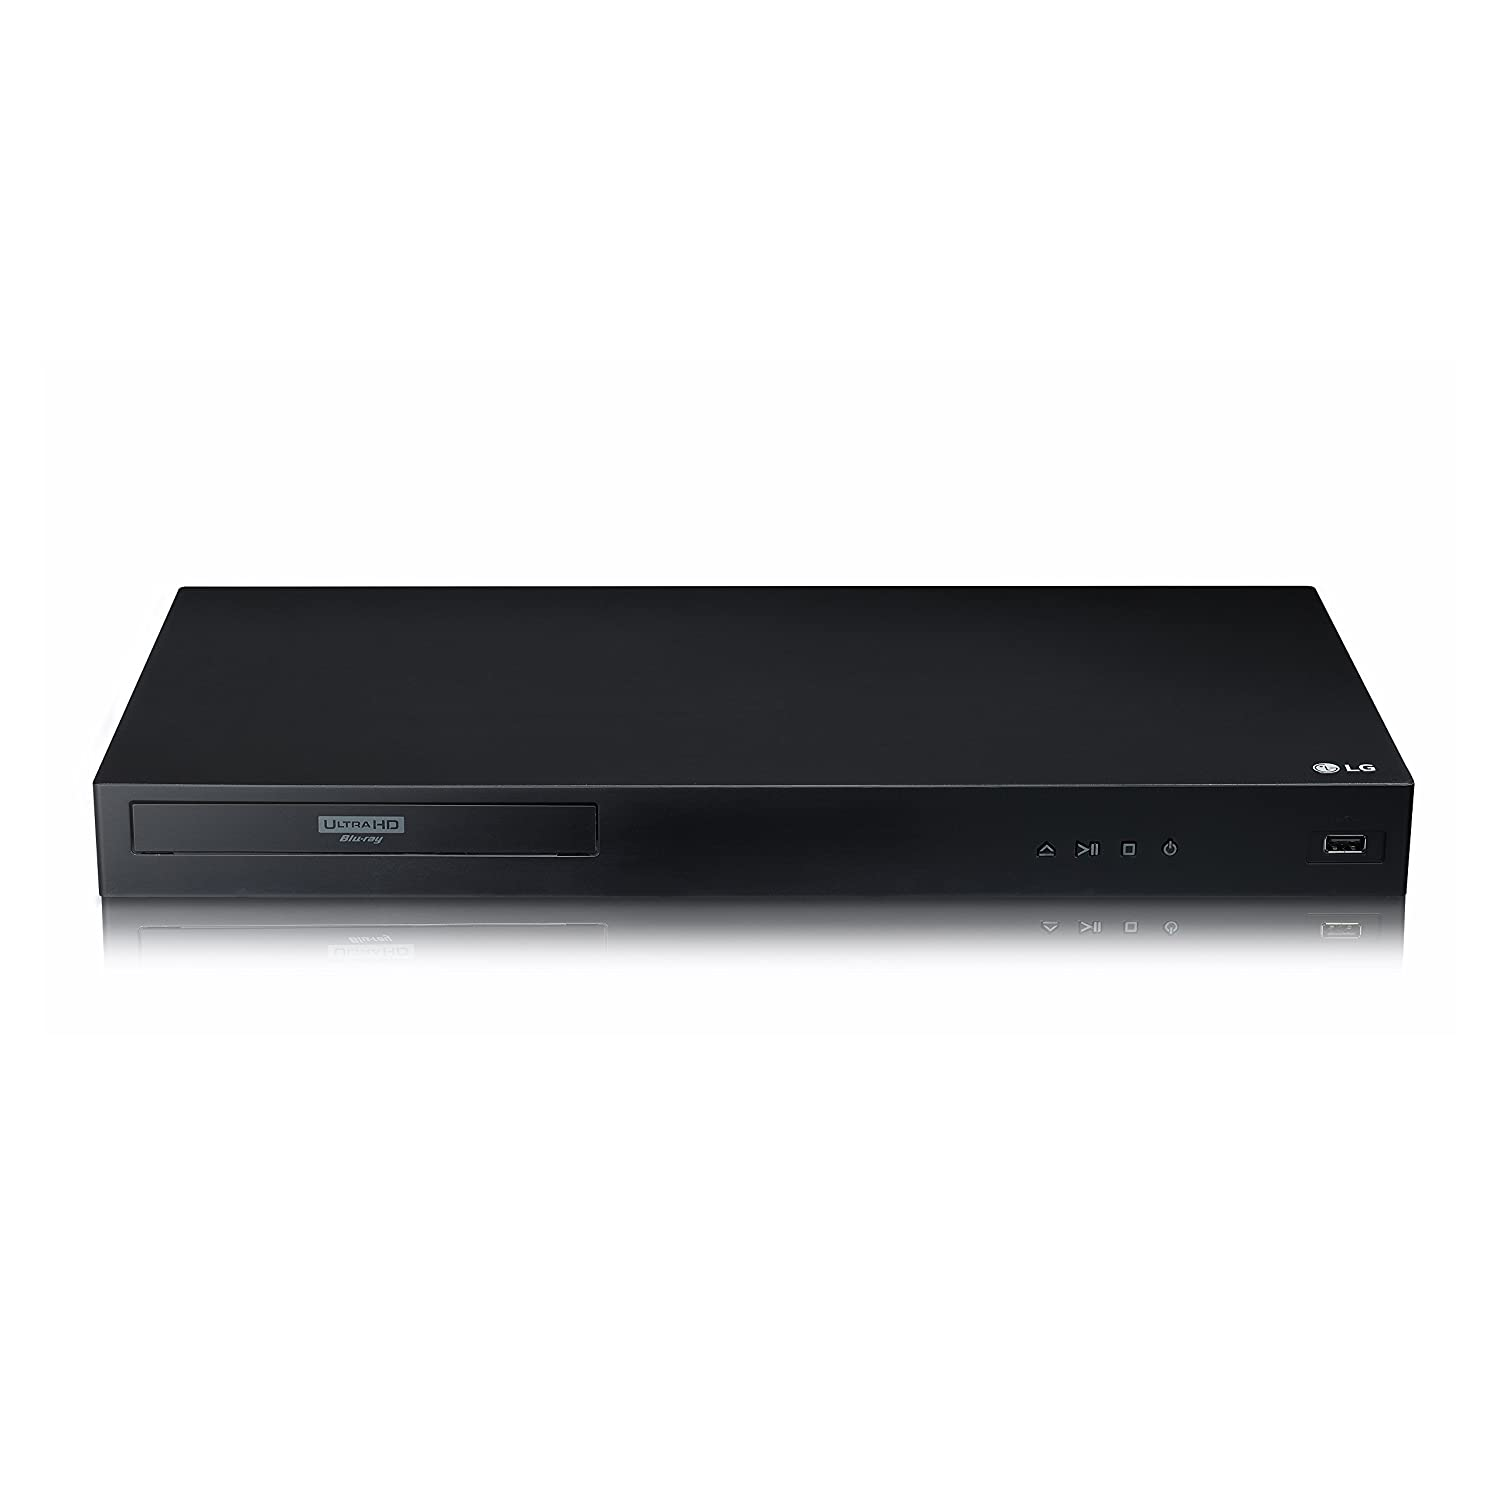 LG UBK80 4K Ultra-HD Blu-ray Player with HDR Compatibility (2018)